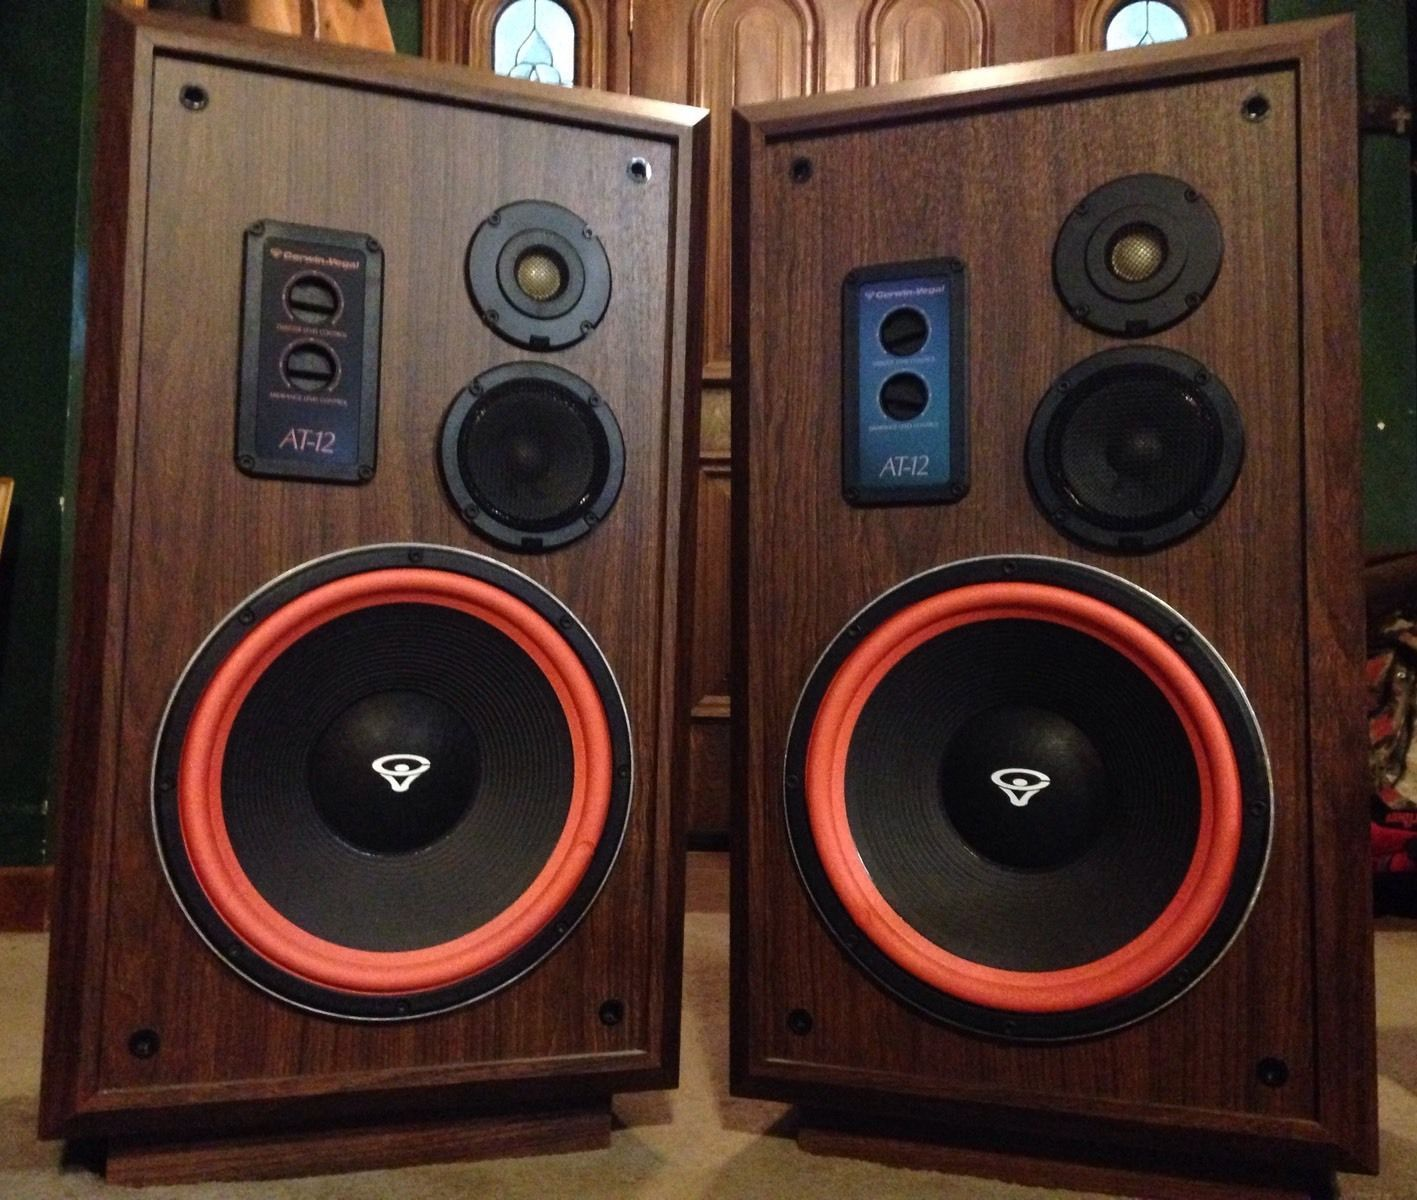 Vintage Cerwin Vega At 12 Speakers Pair In The Original Box Ebay Vintage Speakers Speakers For Sale Speaker